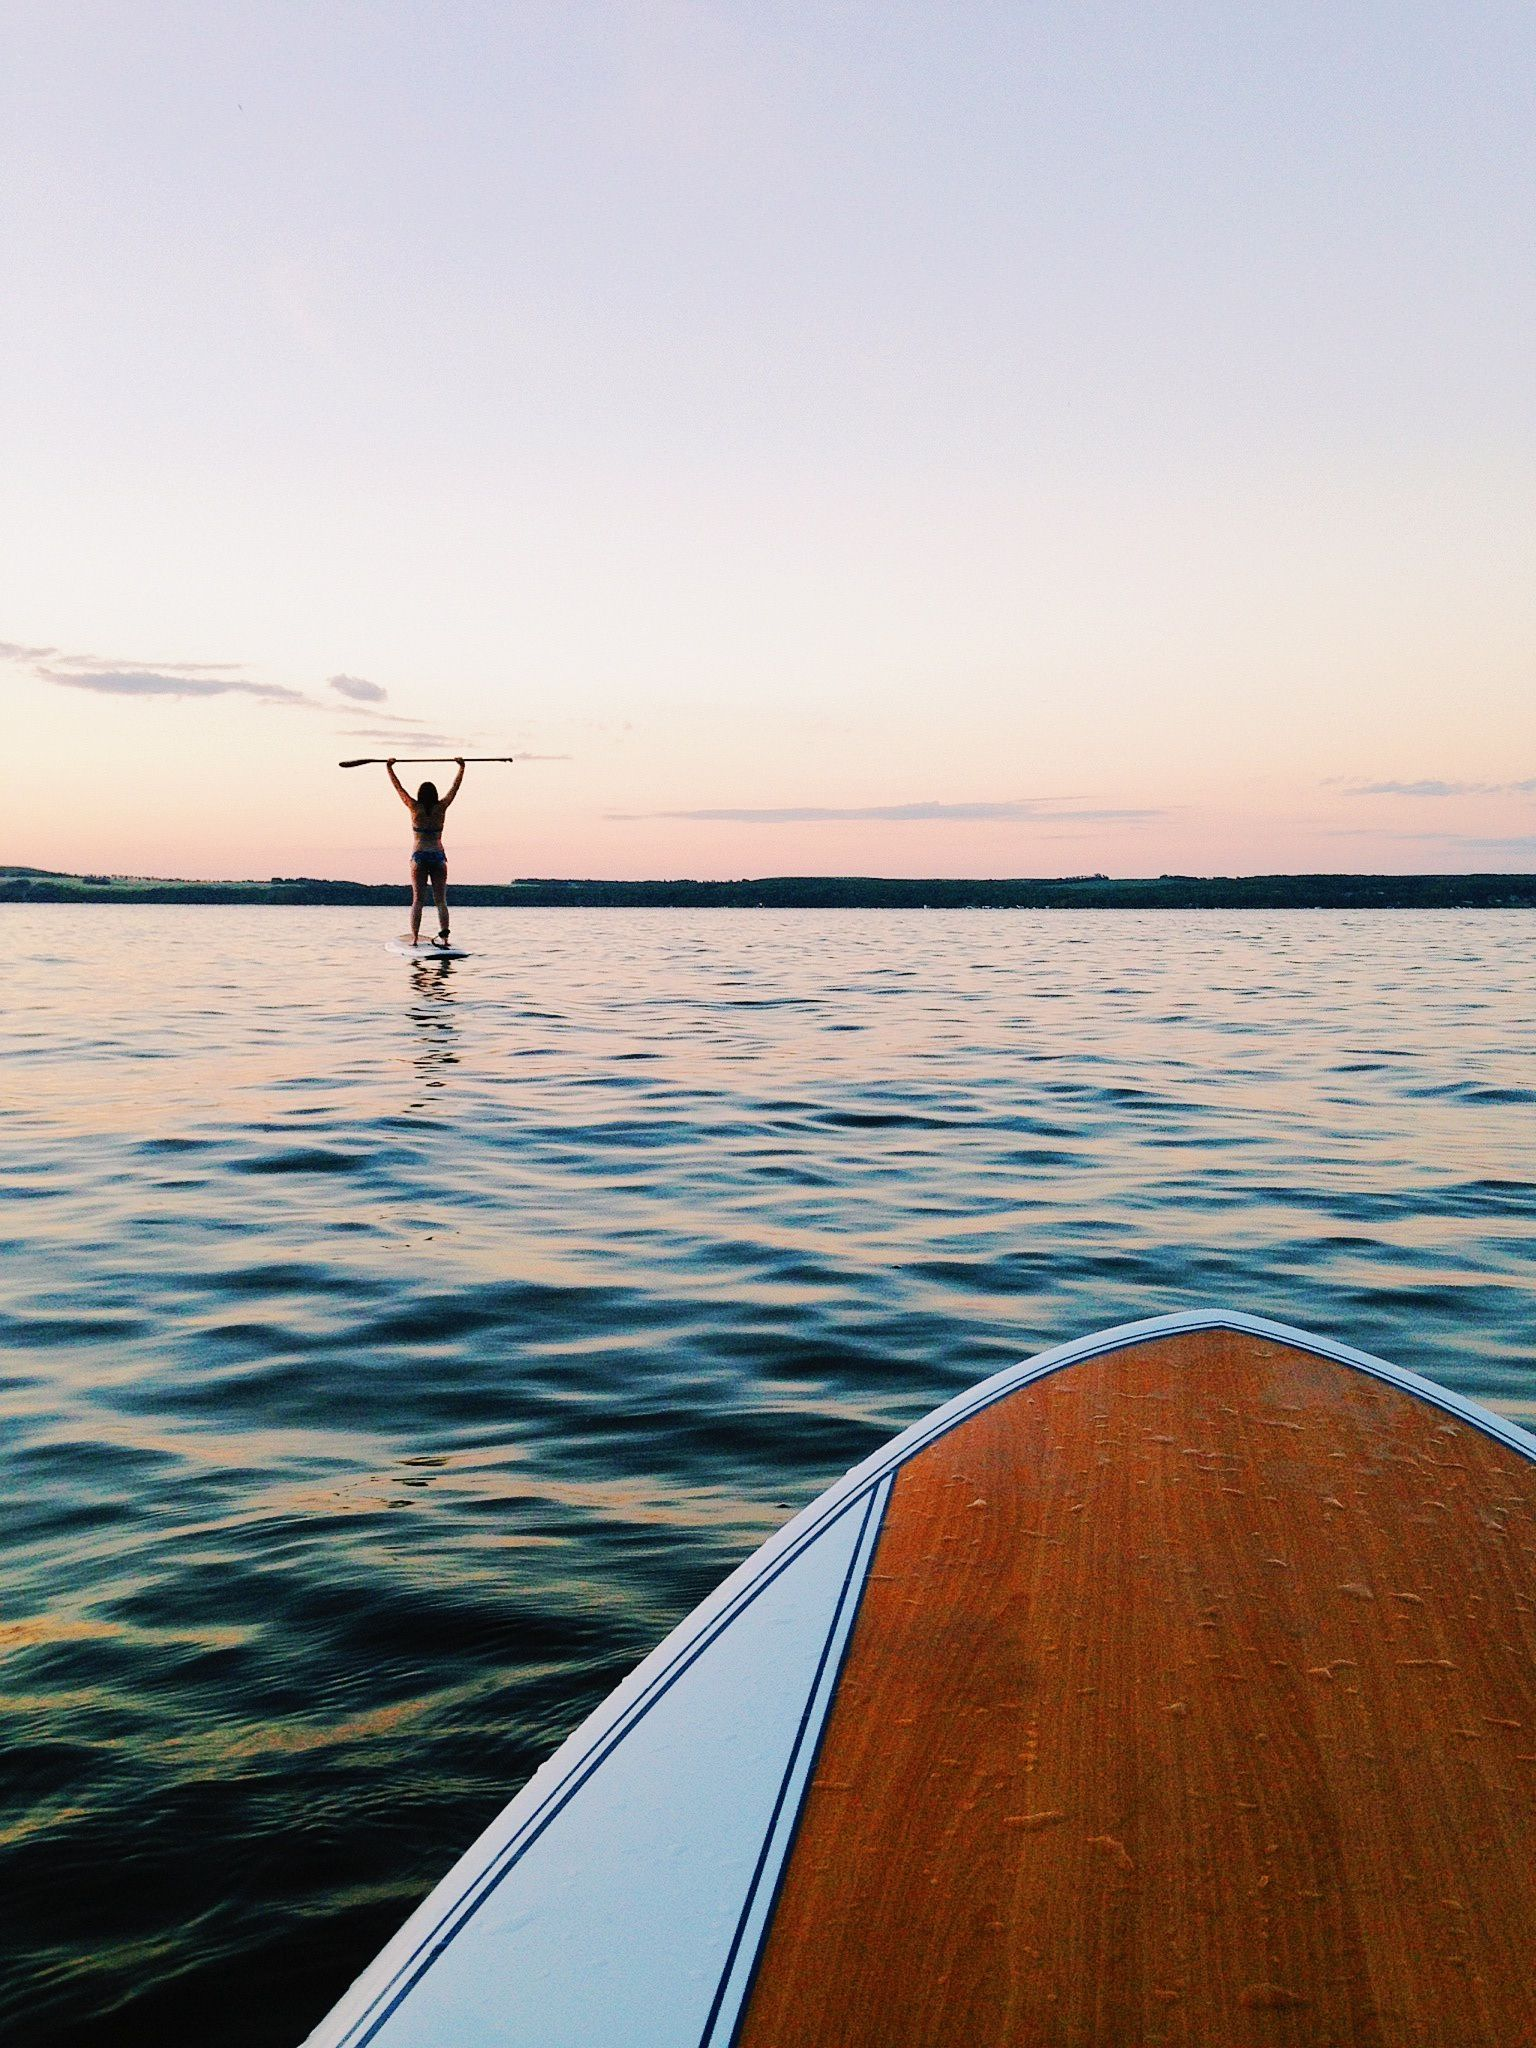 paddleboarding. stand up paddle boarding with sunset at the lake. #sup #paddleboard #standuppaddle